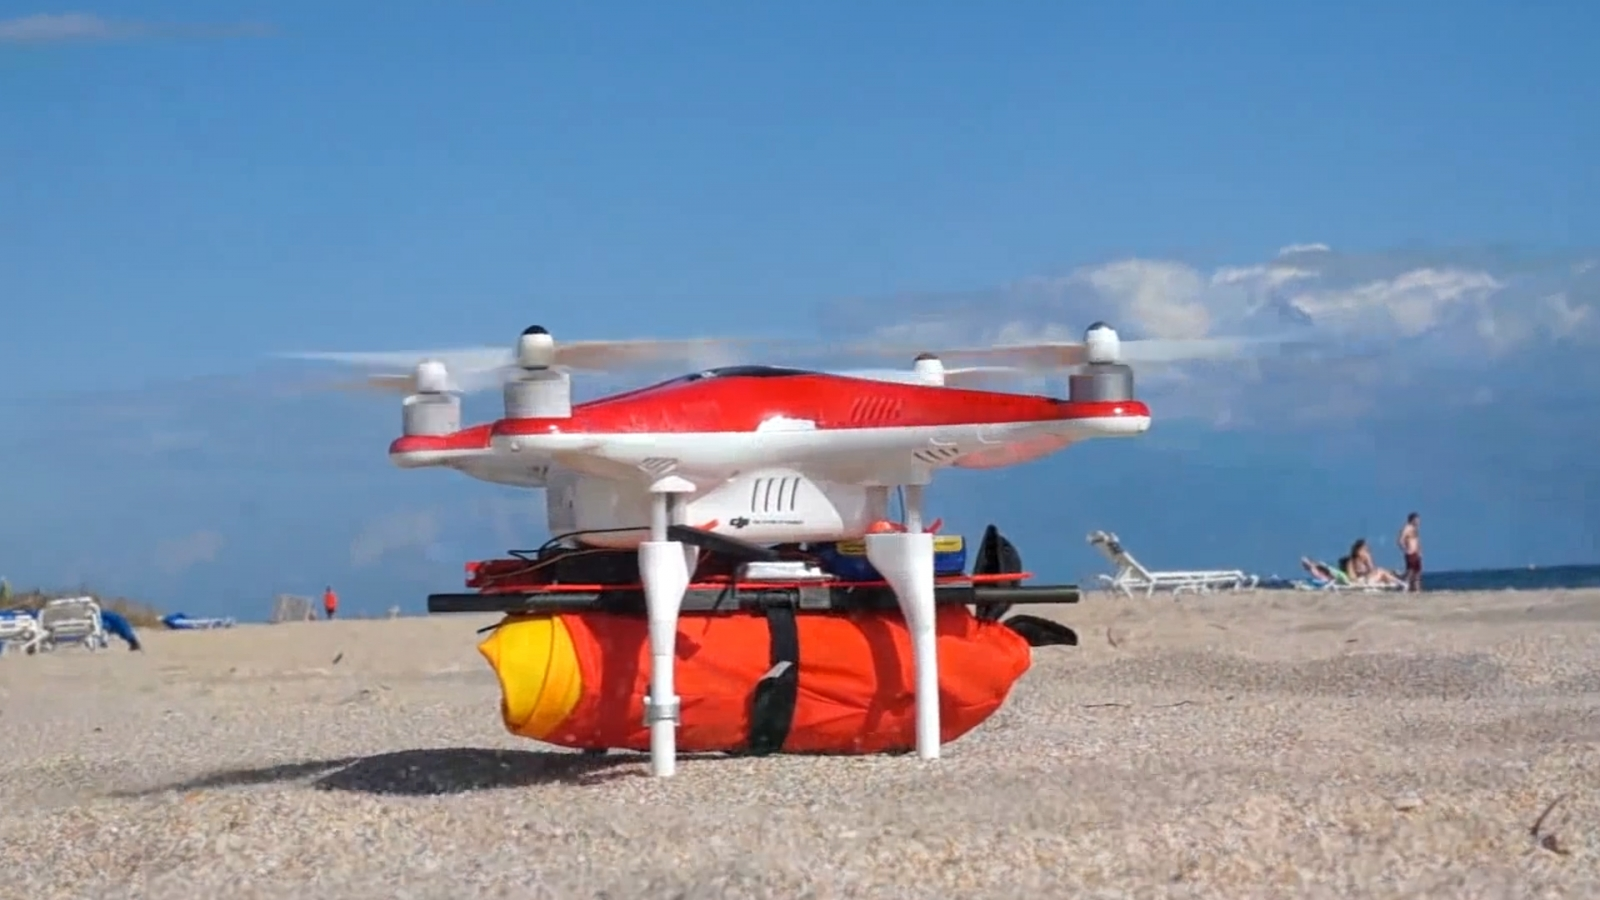 Project Ryptide: The drone that could save you from drowning